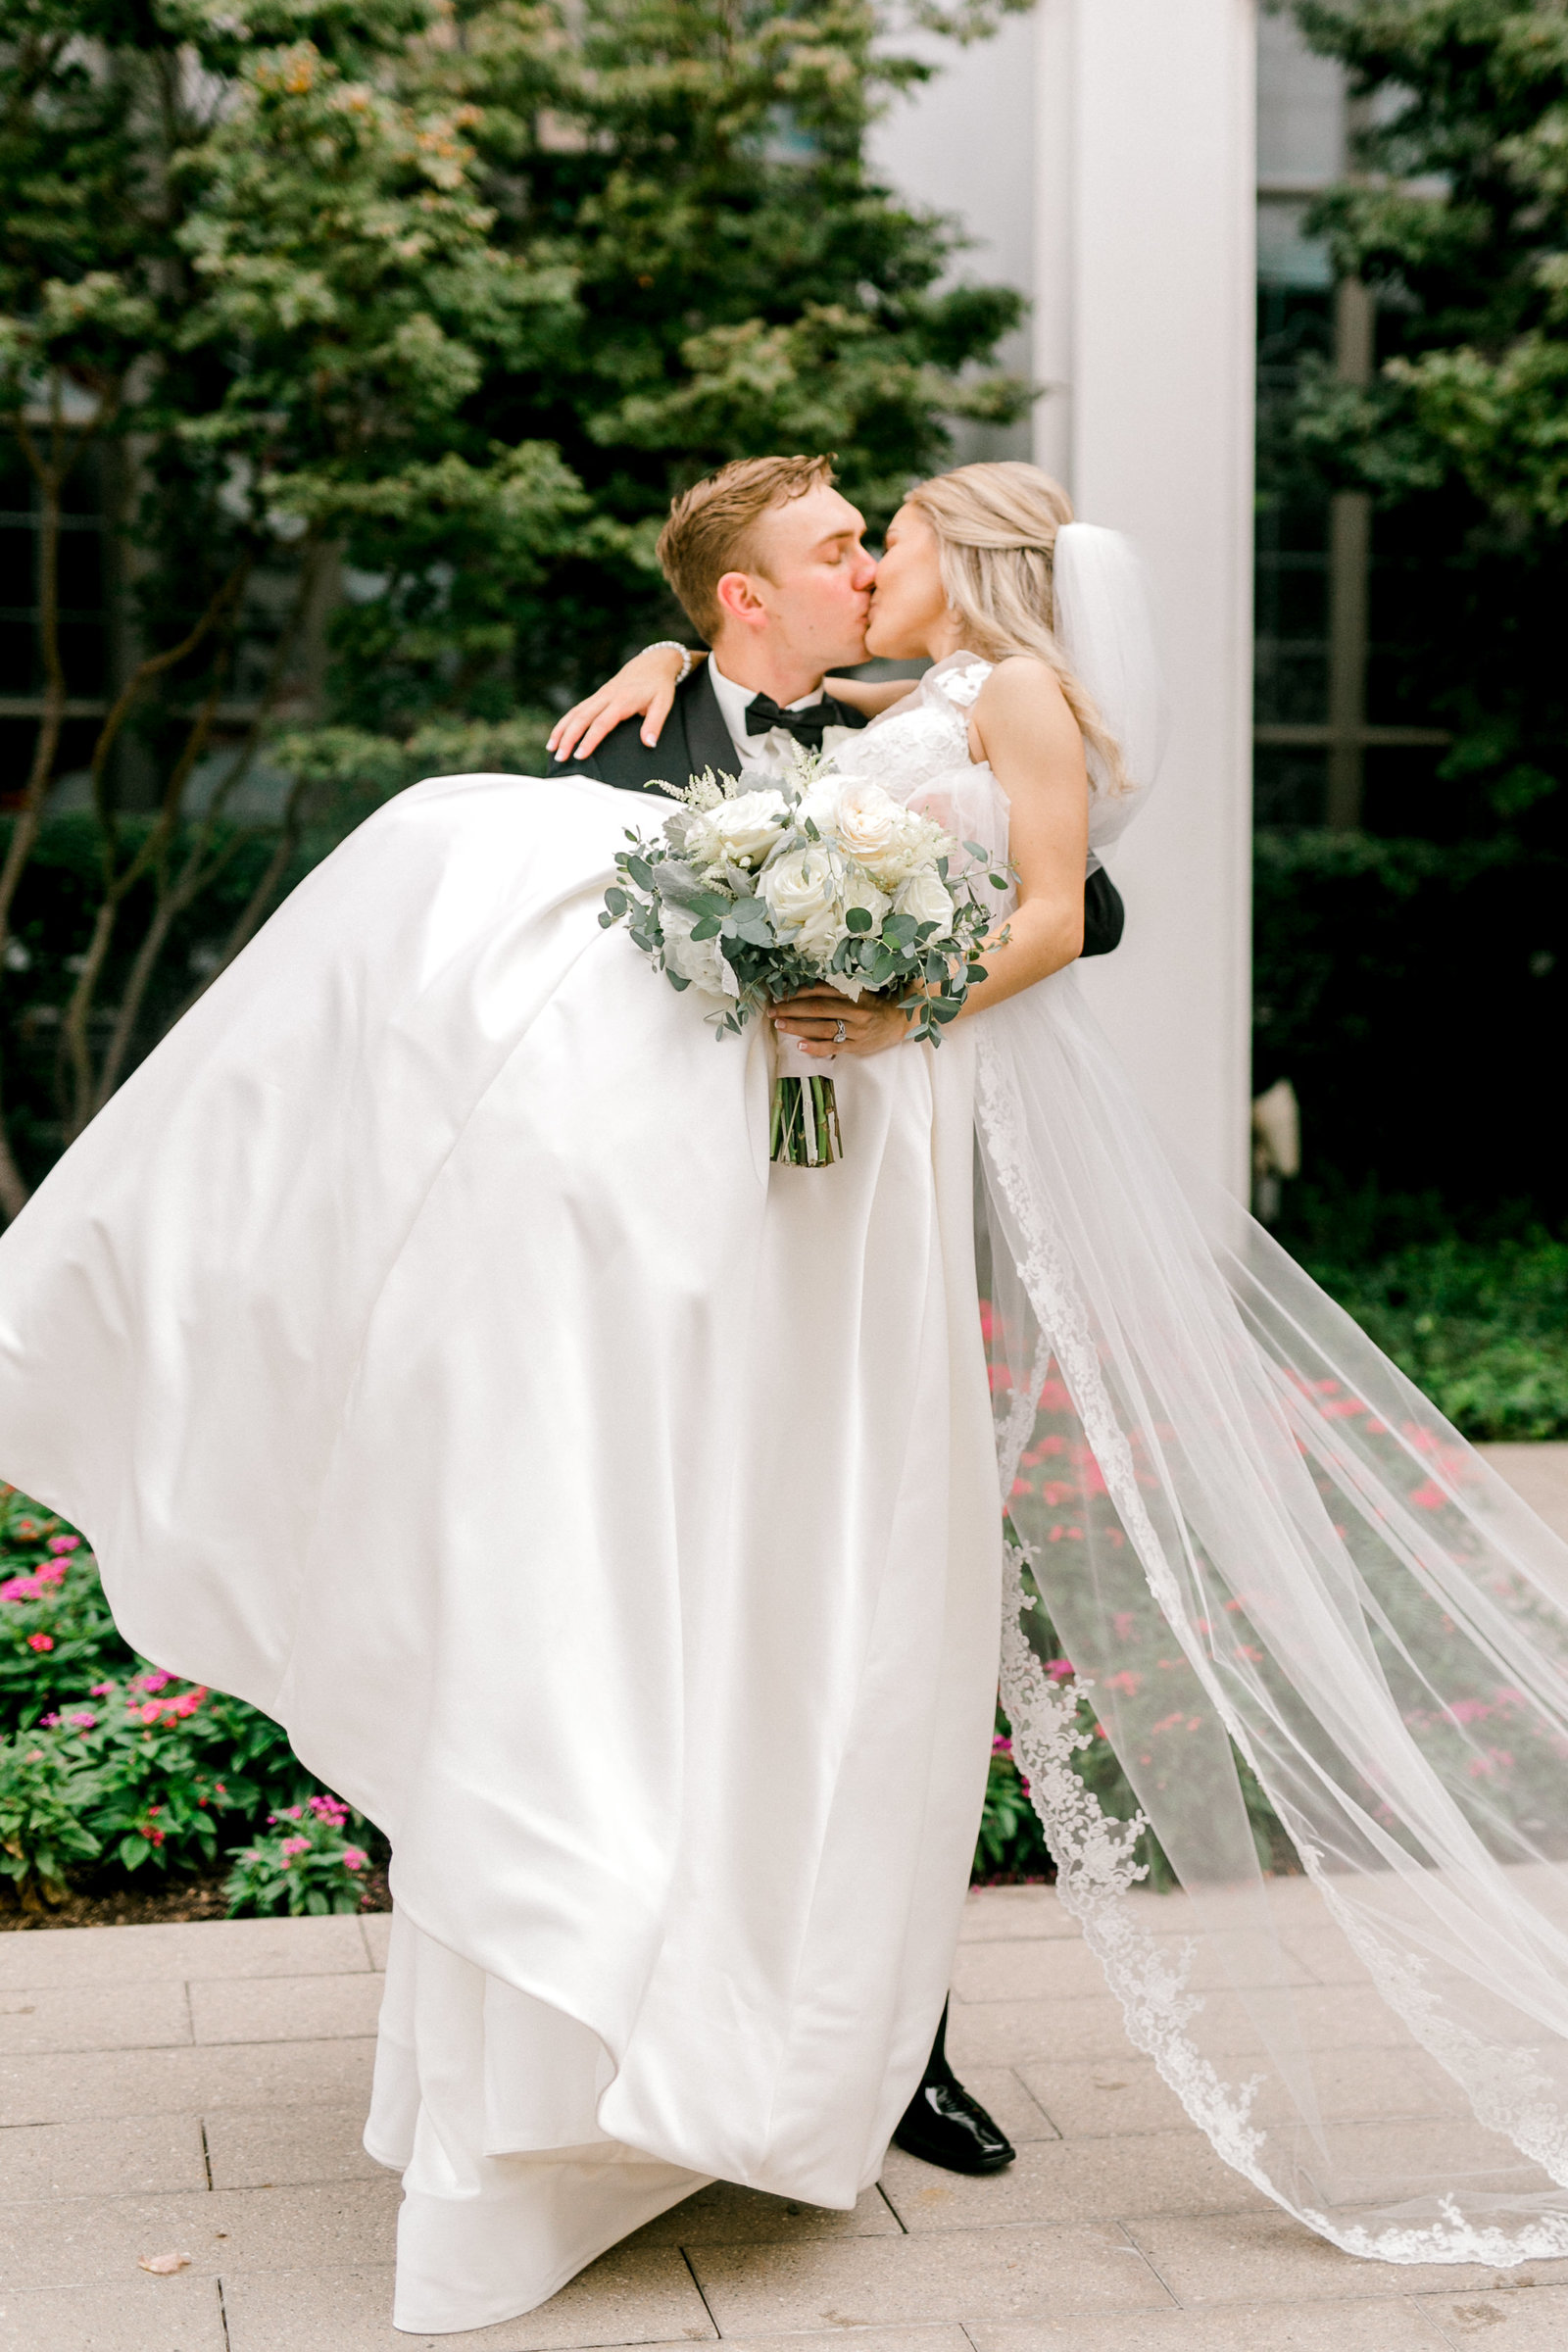 Brooke-and-Cody-Wedding-by-Emily-Nicole-Photo-776